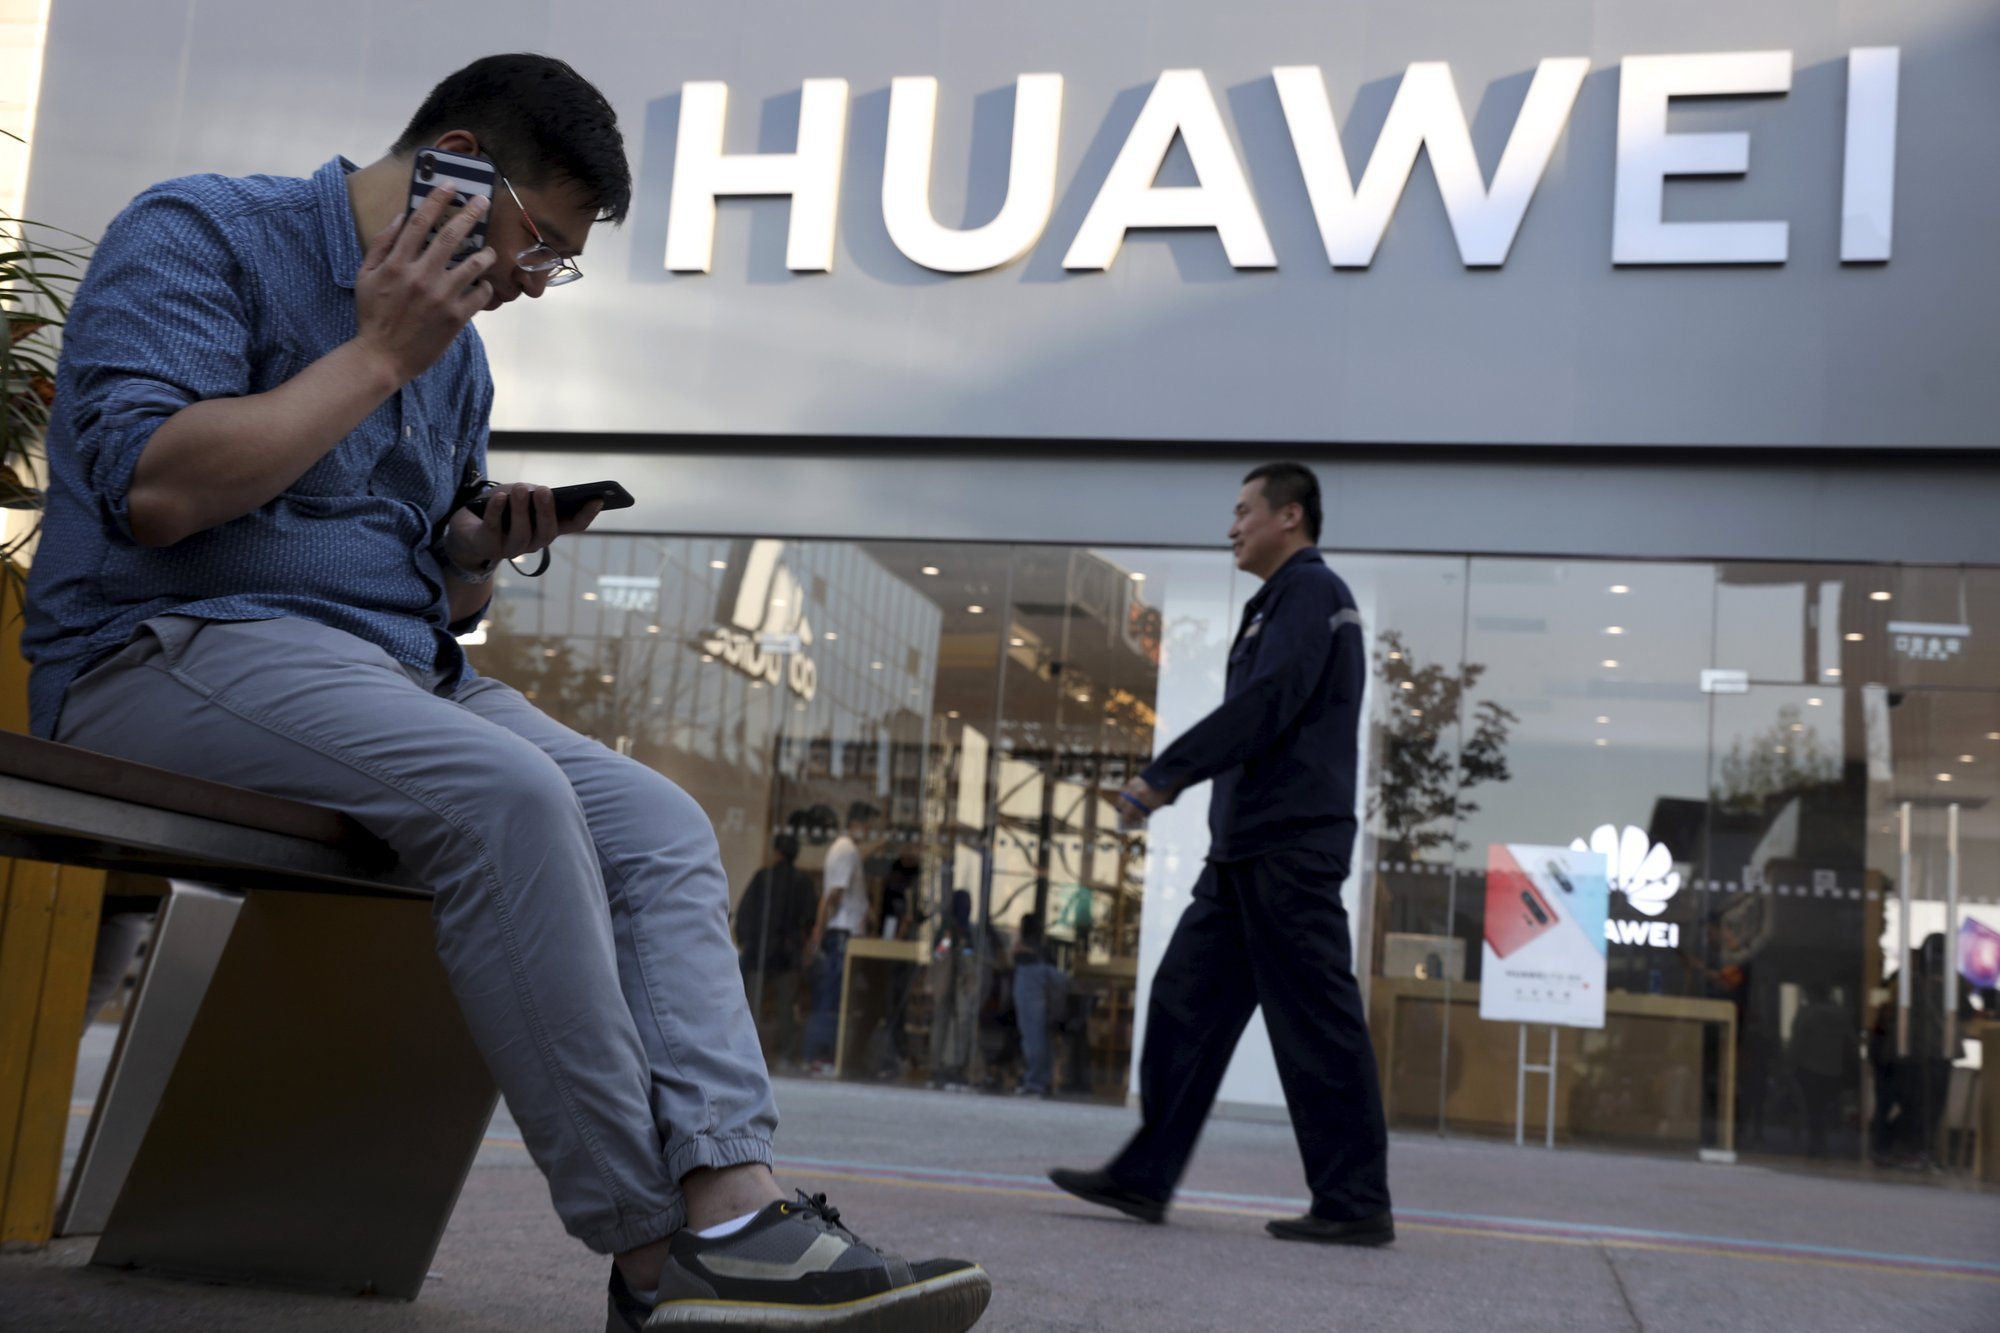 Huawei apt to be stripped of Google services after US ban